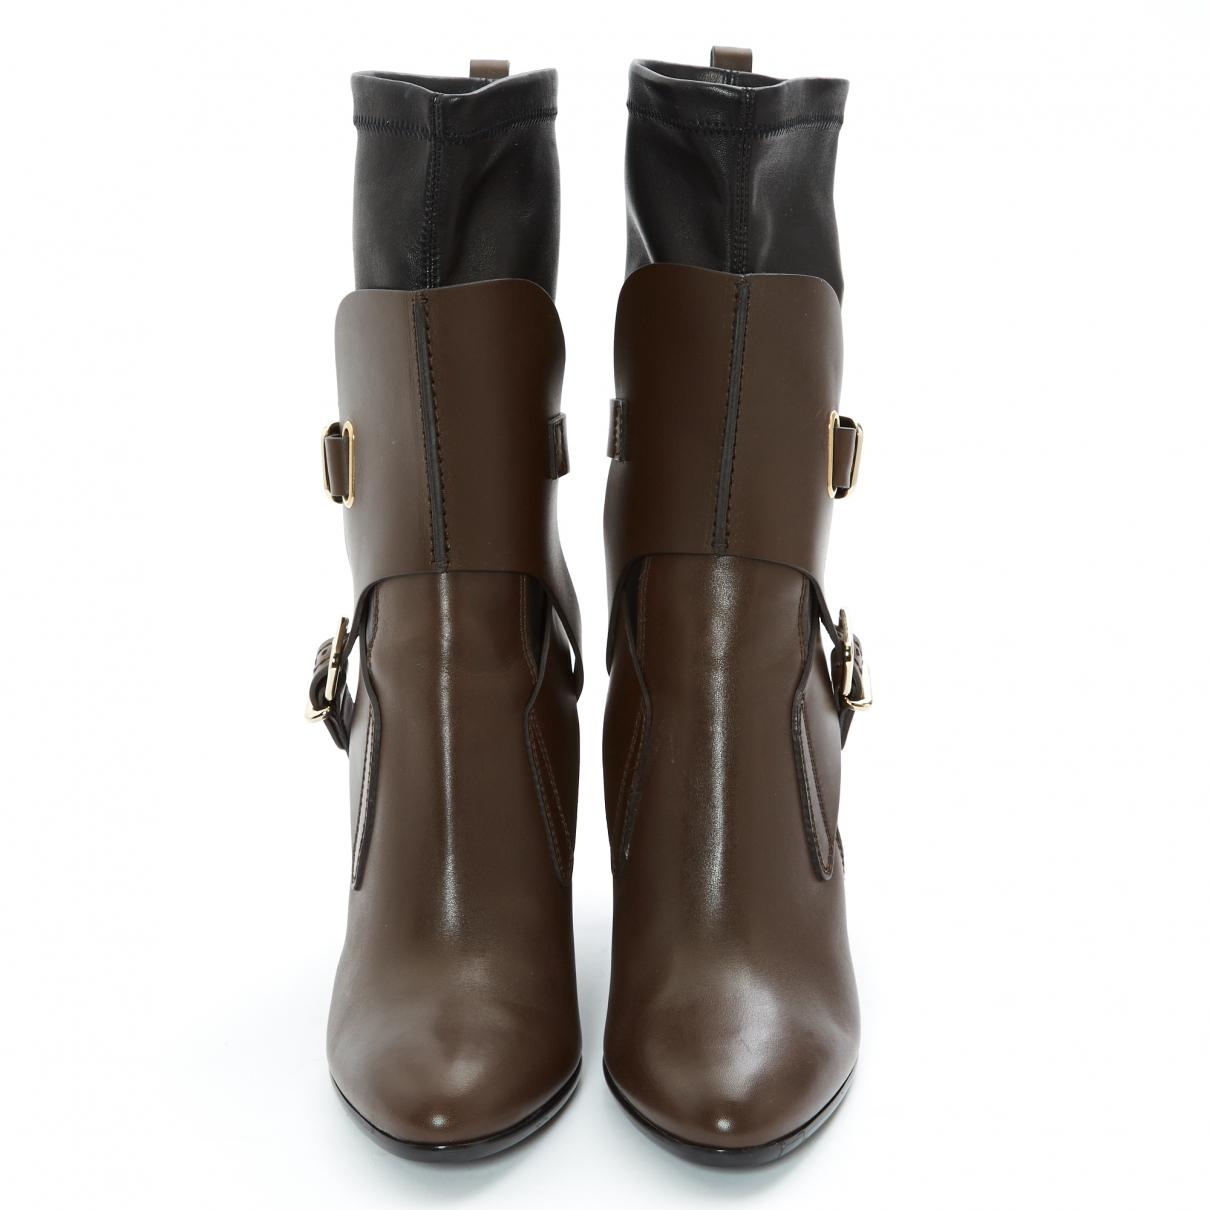 Tod's Pre-owned Leather Boots in Brown